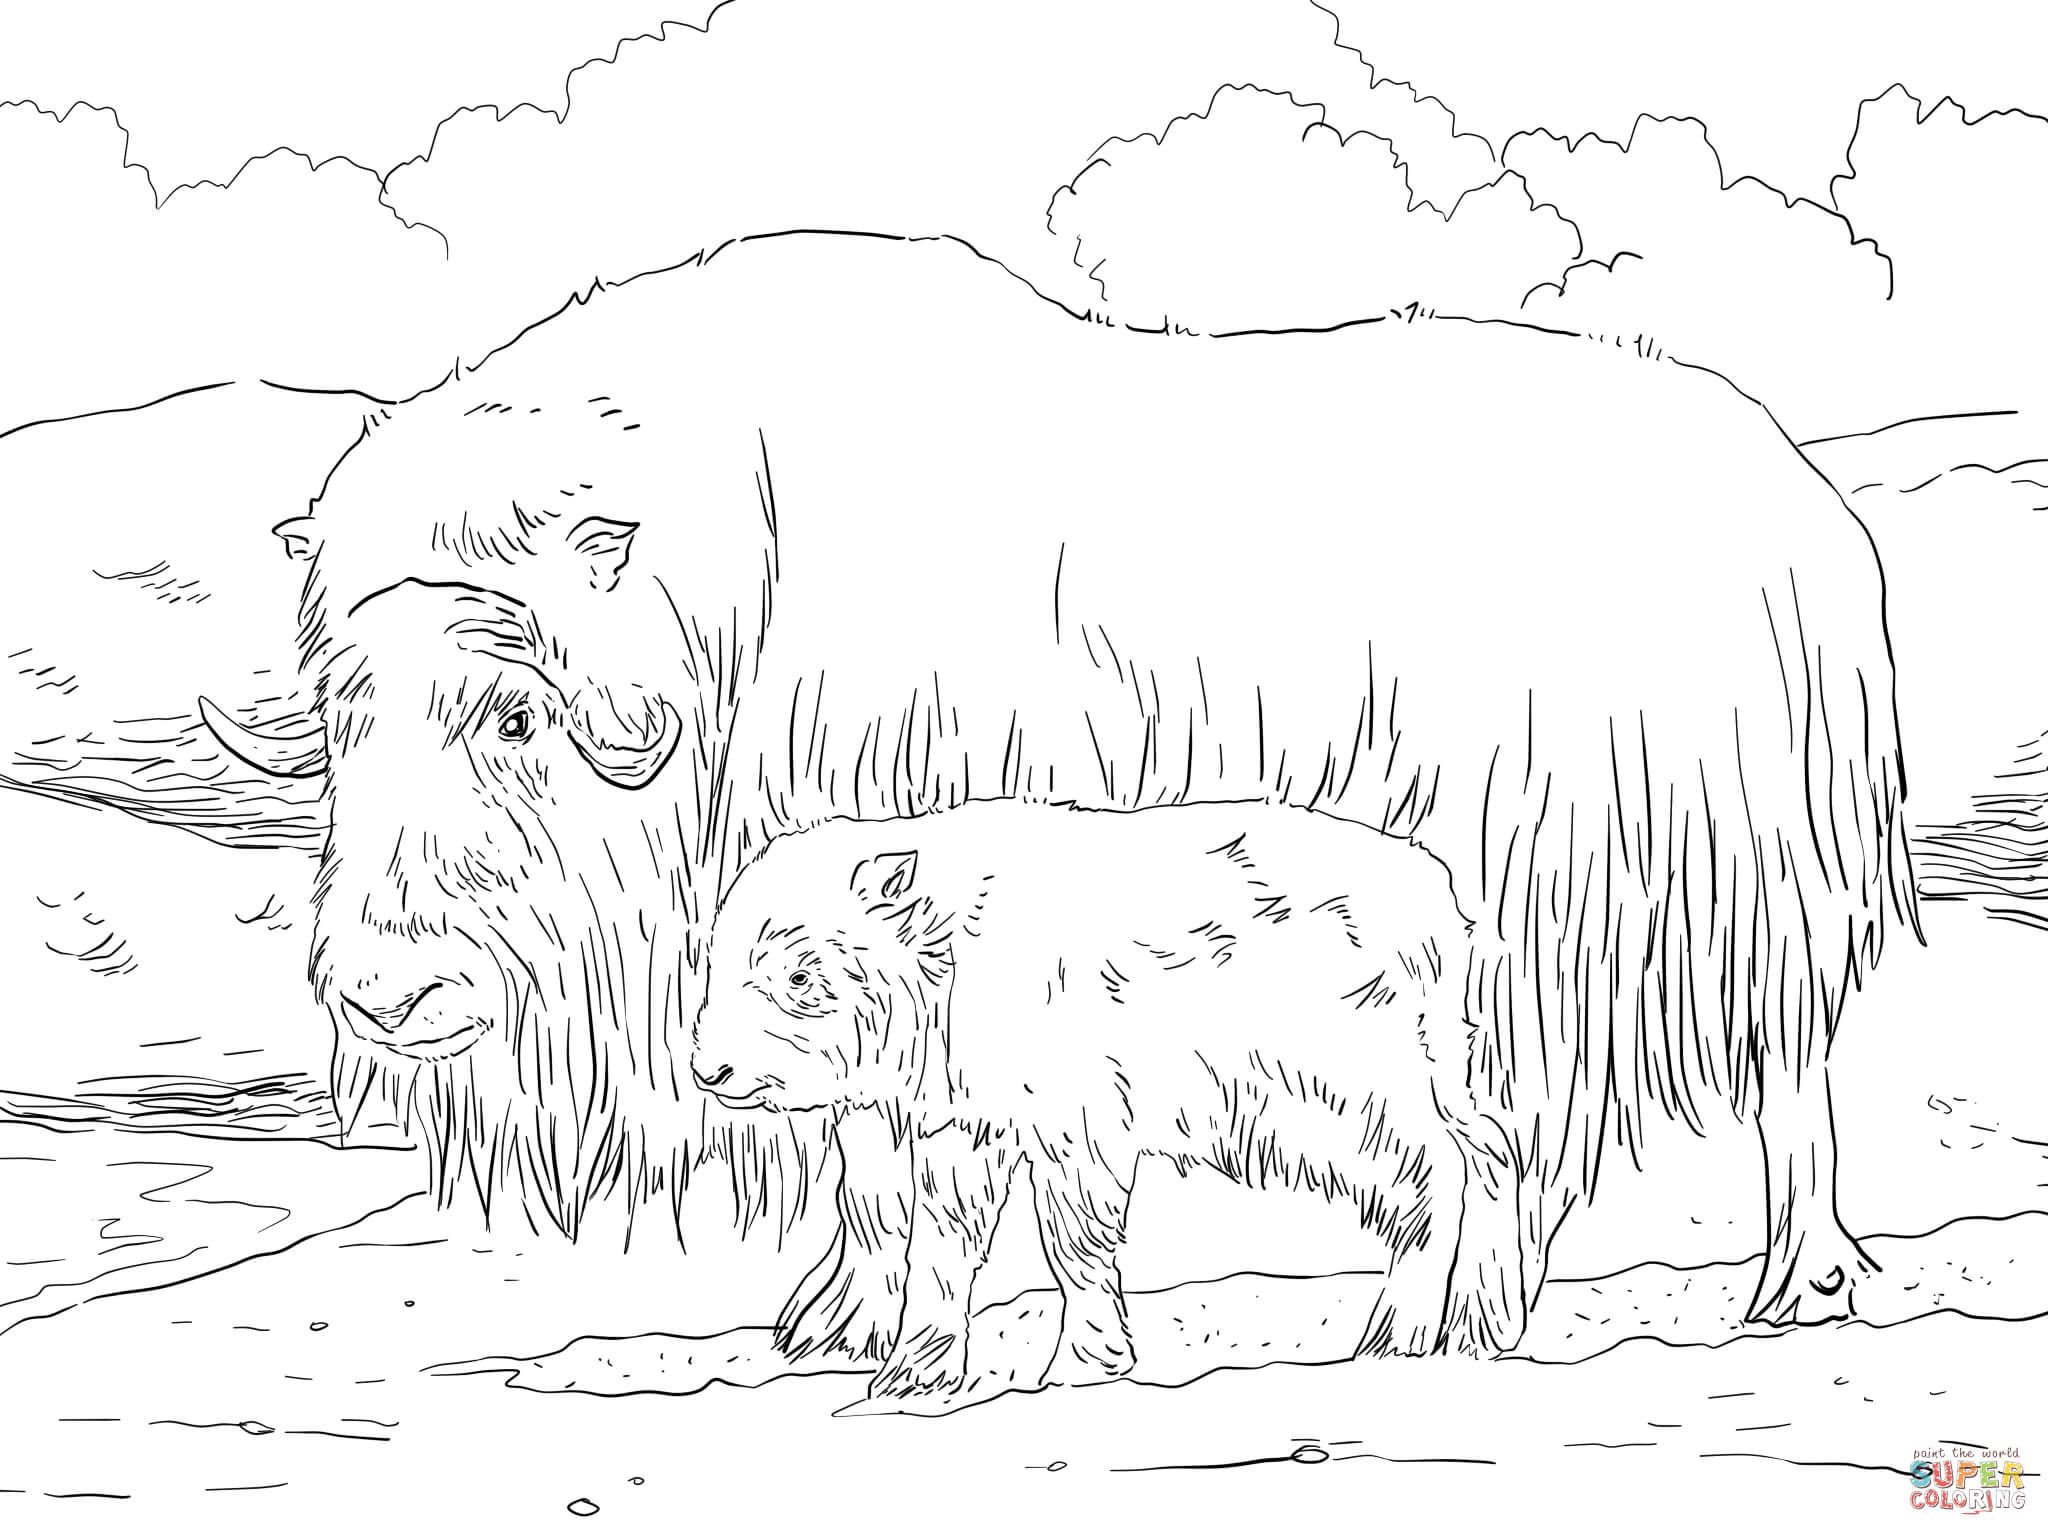 musk ox coloring page ox coloring page at getcoloringscom free printable page musk coloring ox